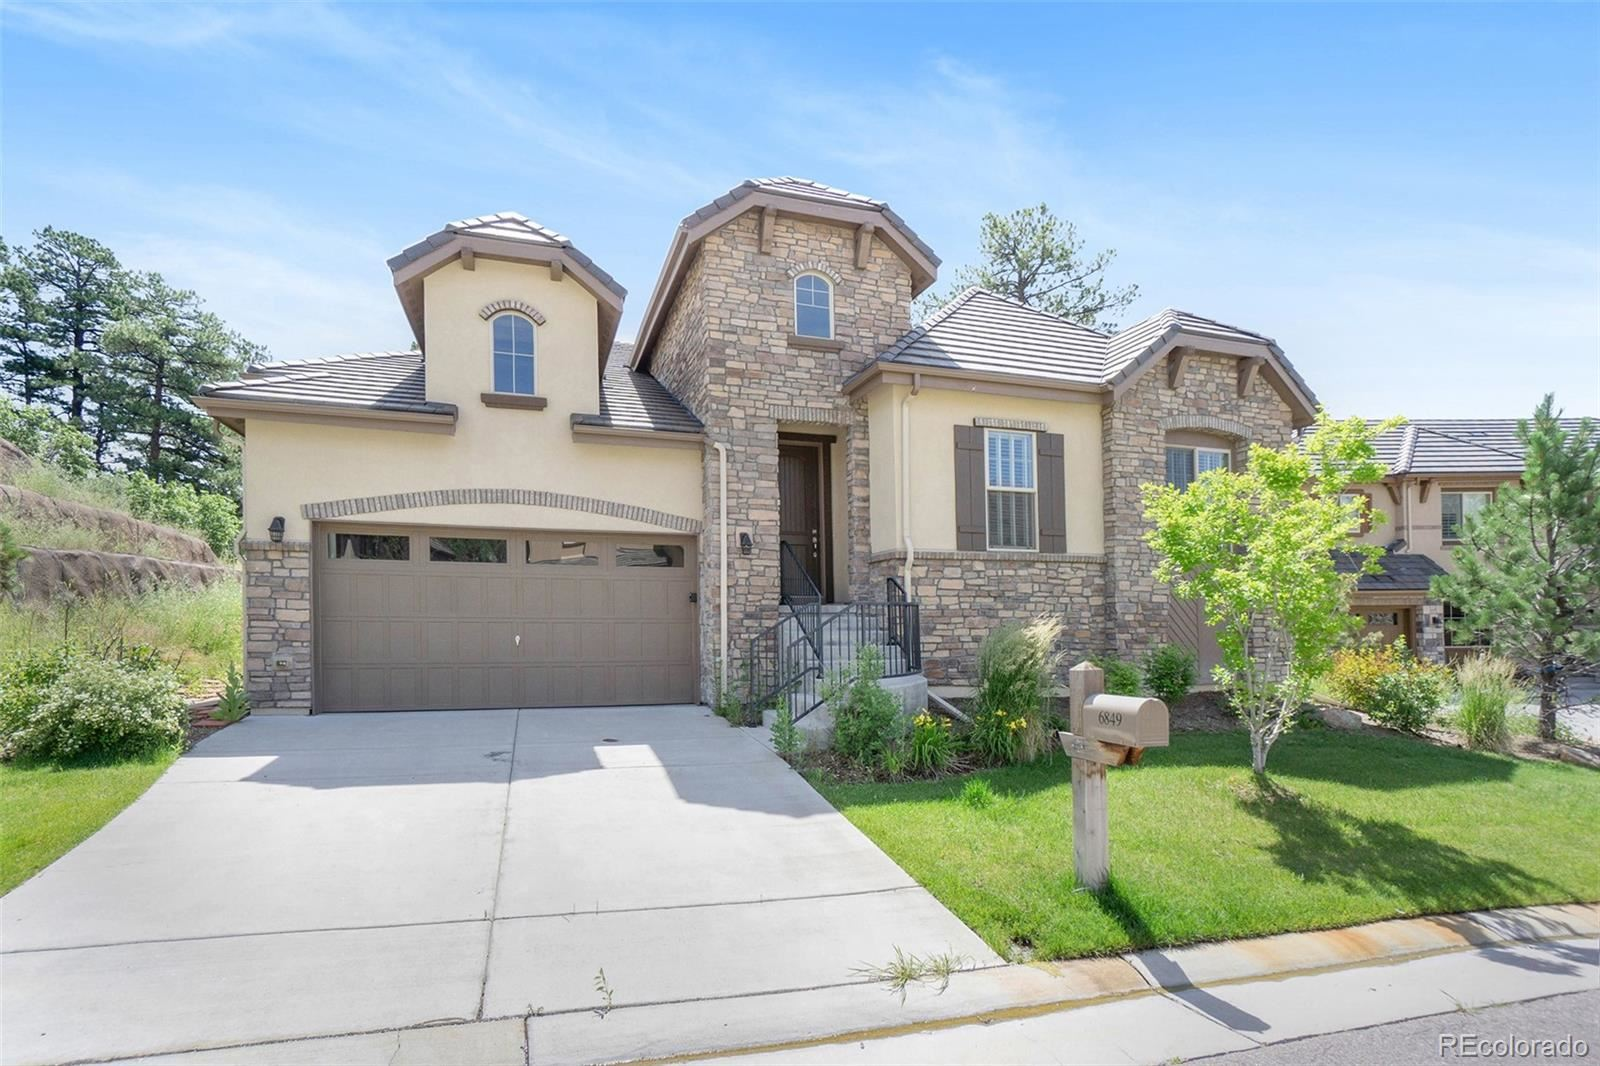 6849 Northstar Circle, Castle Rock, CO 80108 - #: 5525030